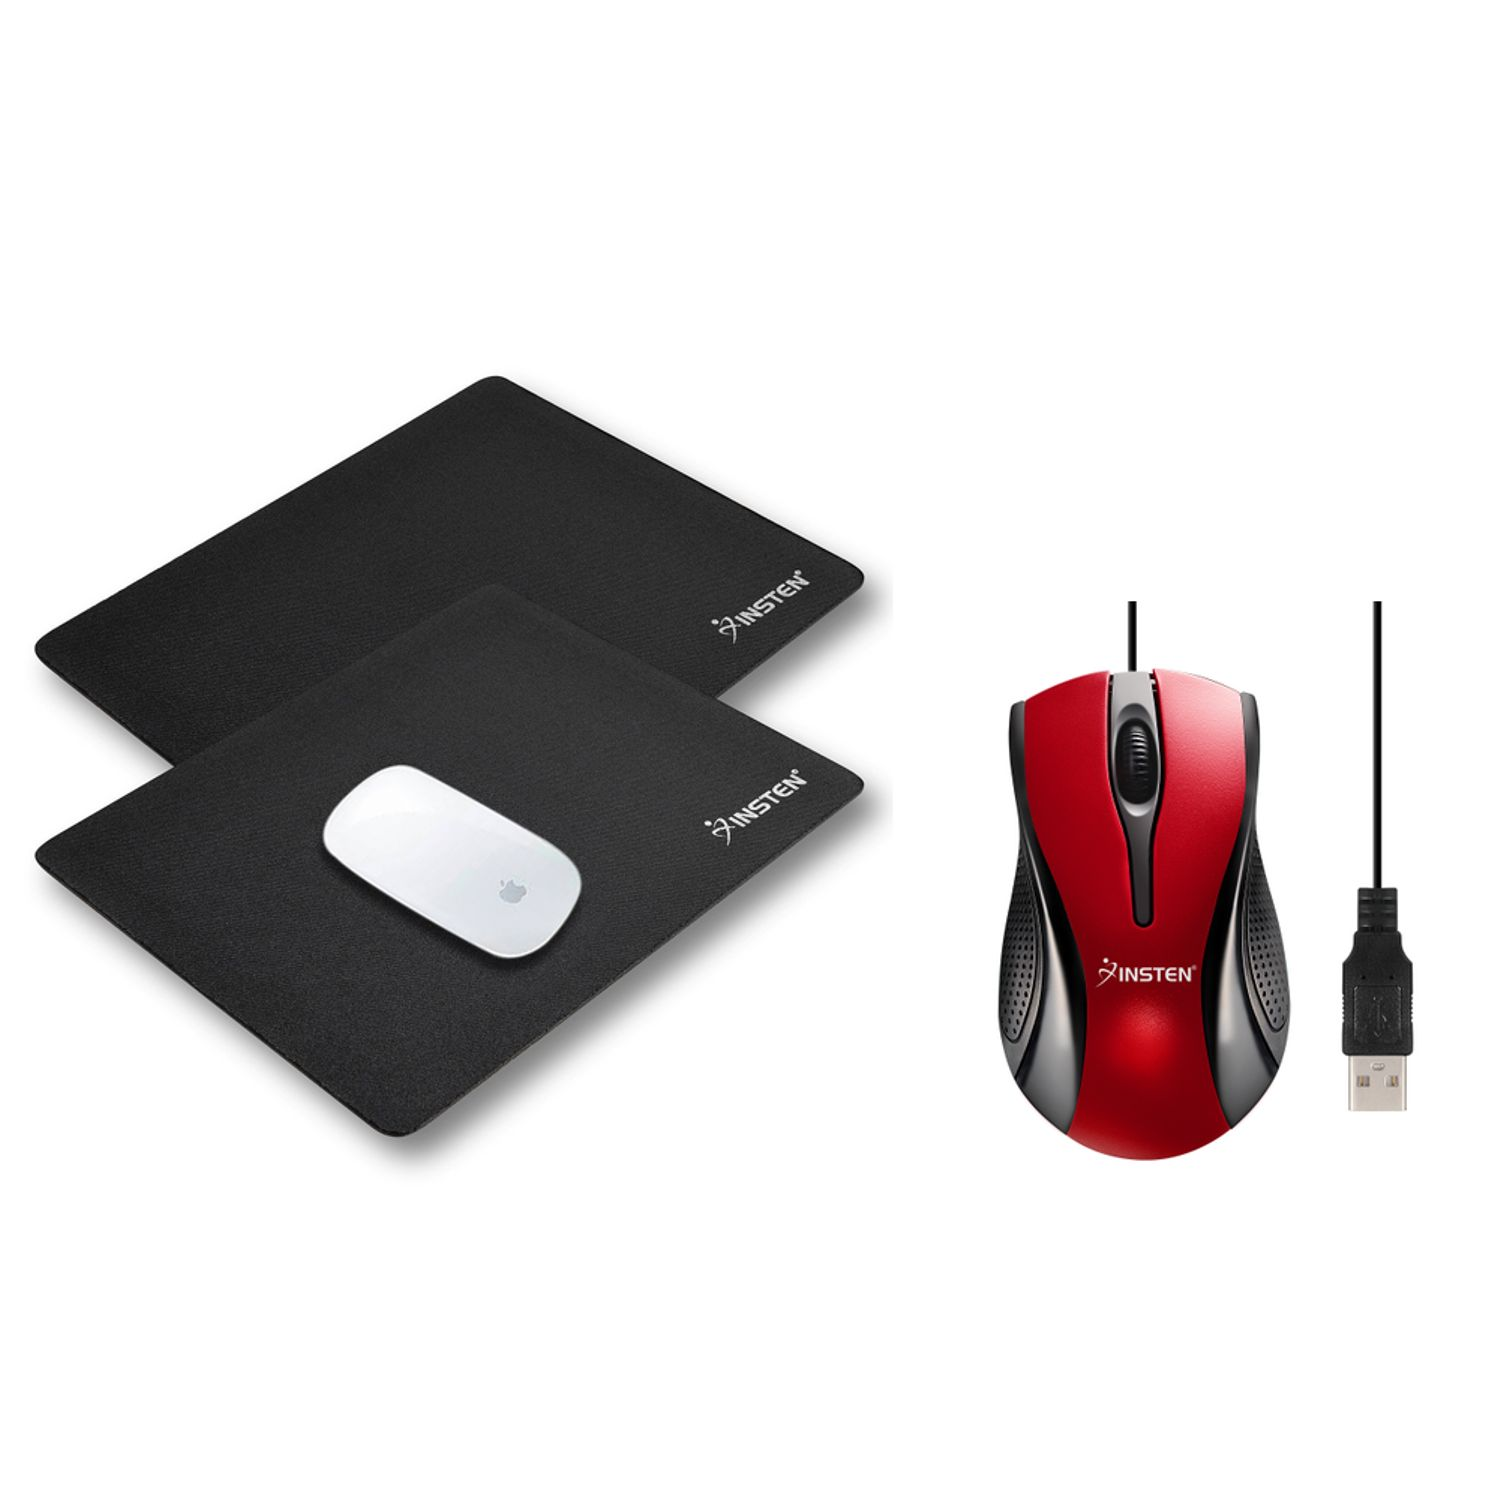 Insten 2pcs Black Silicone Gel Skin Mouse Pad+USB Optical Scroll Wheel Mouse Black/Red